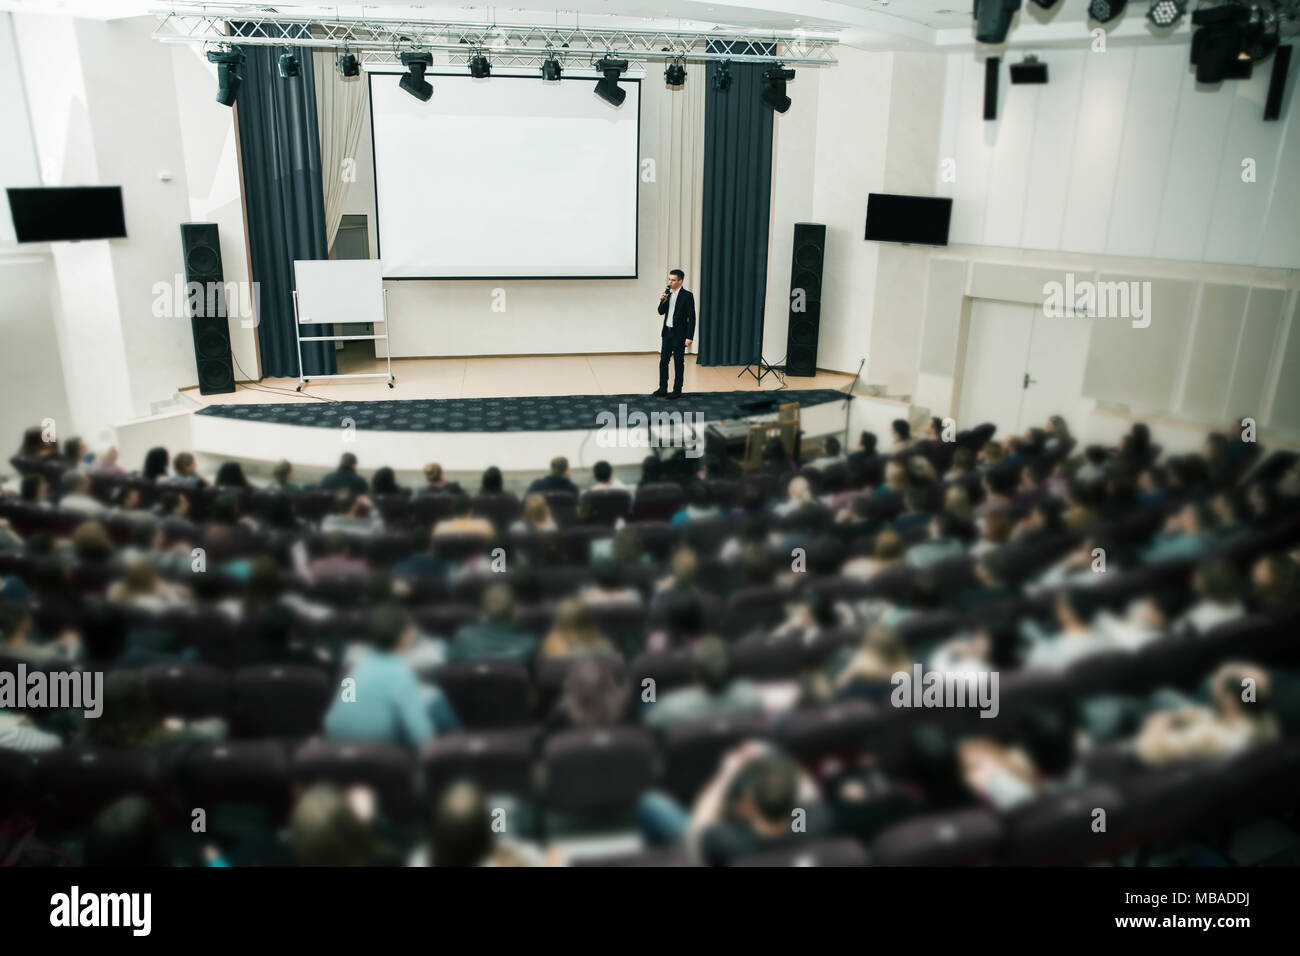 Speaker at Business Conference and Presentation. Audience the conference hall. - Stock Image